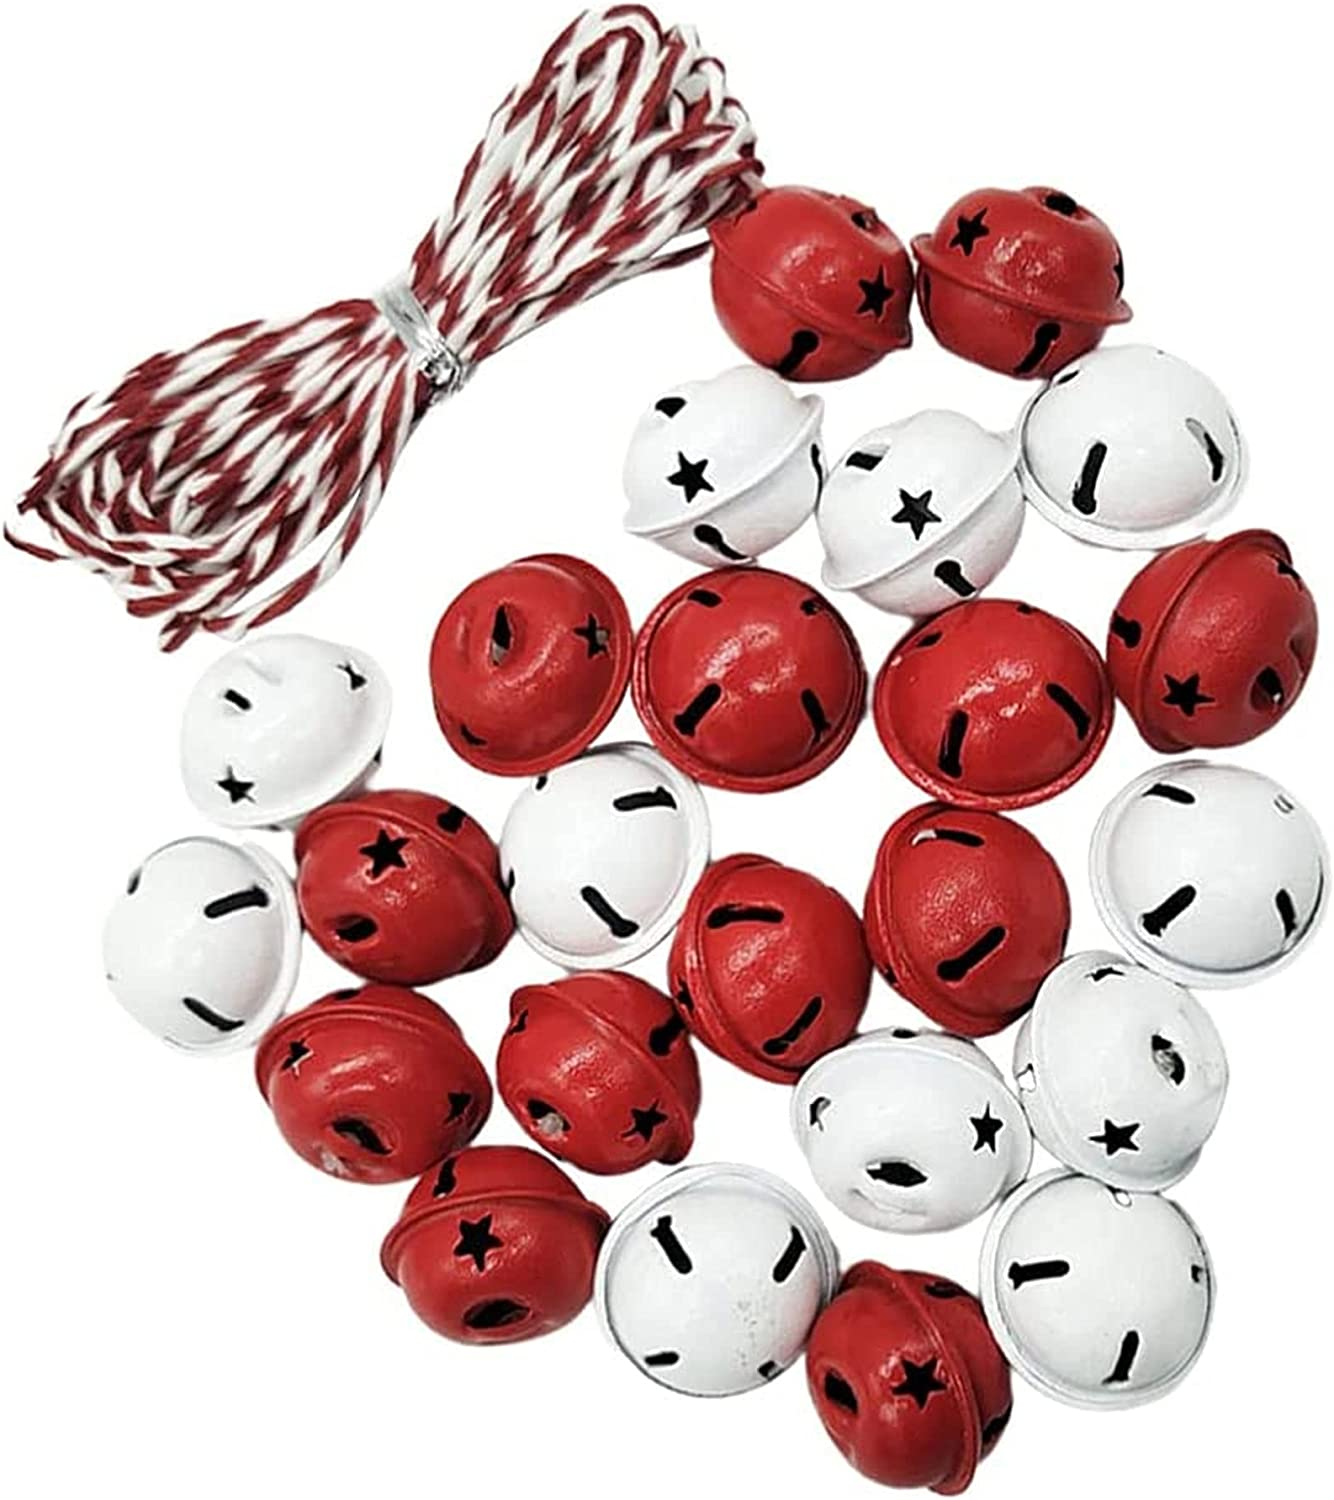 YYDMBH gift Christmas Decorations 2 Now on sale X DIY Hanging Bells Rope with Min